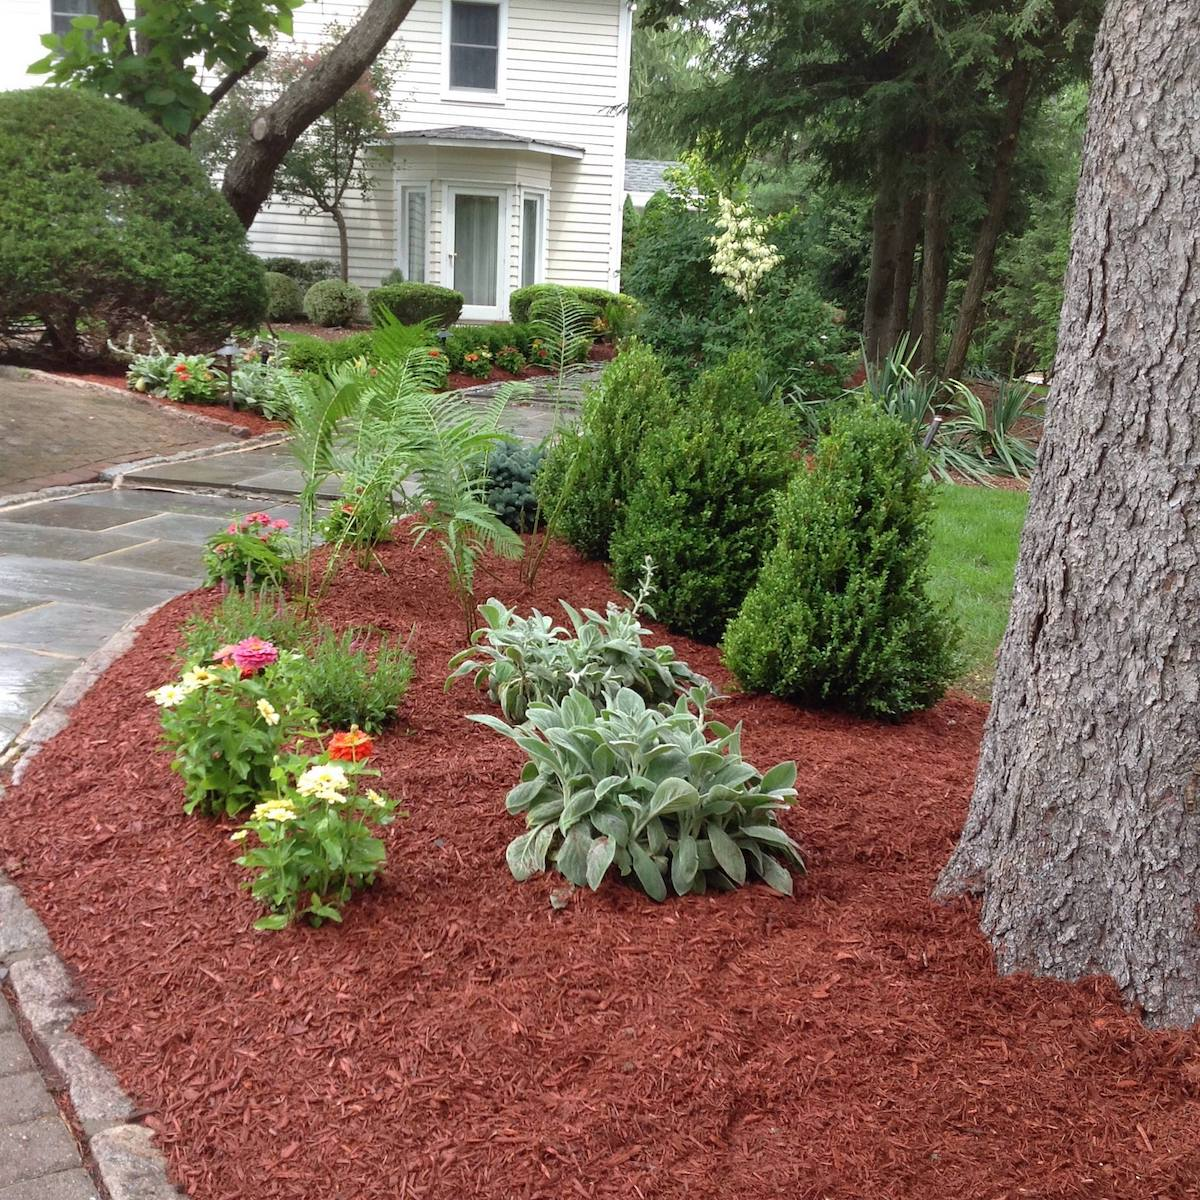 Lawn Service And Landscape: Whitetail Landscaping And Tree Service